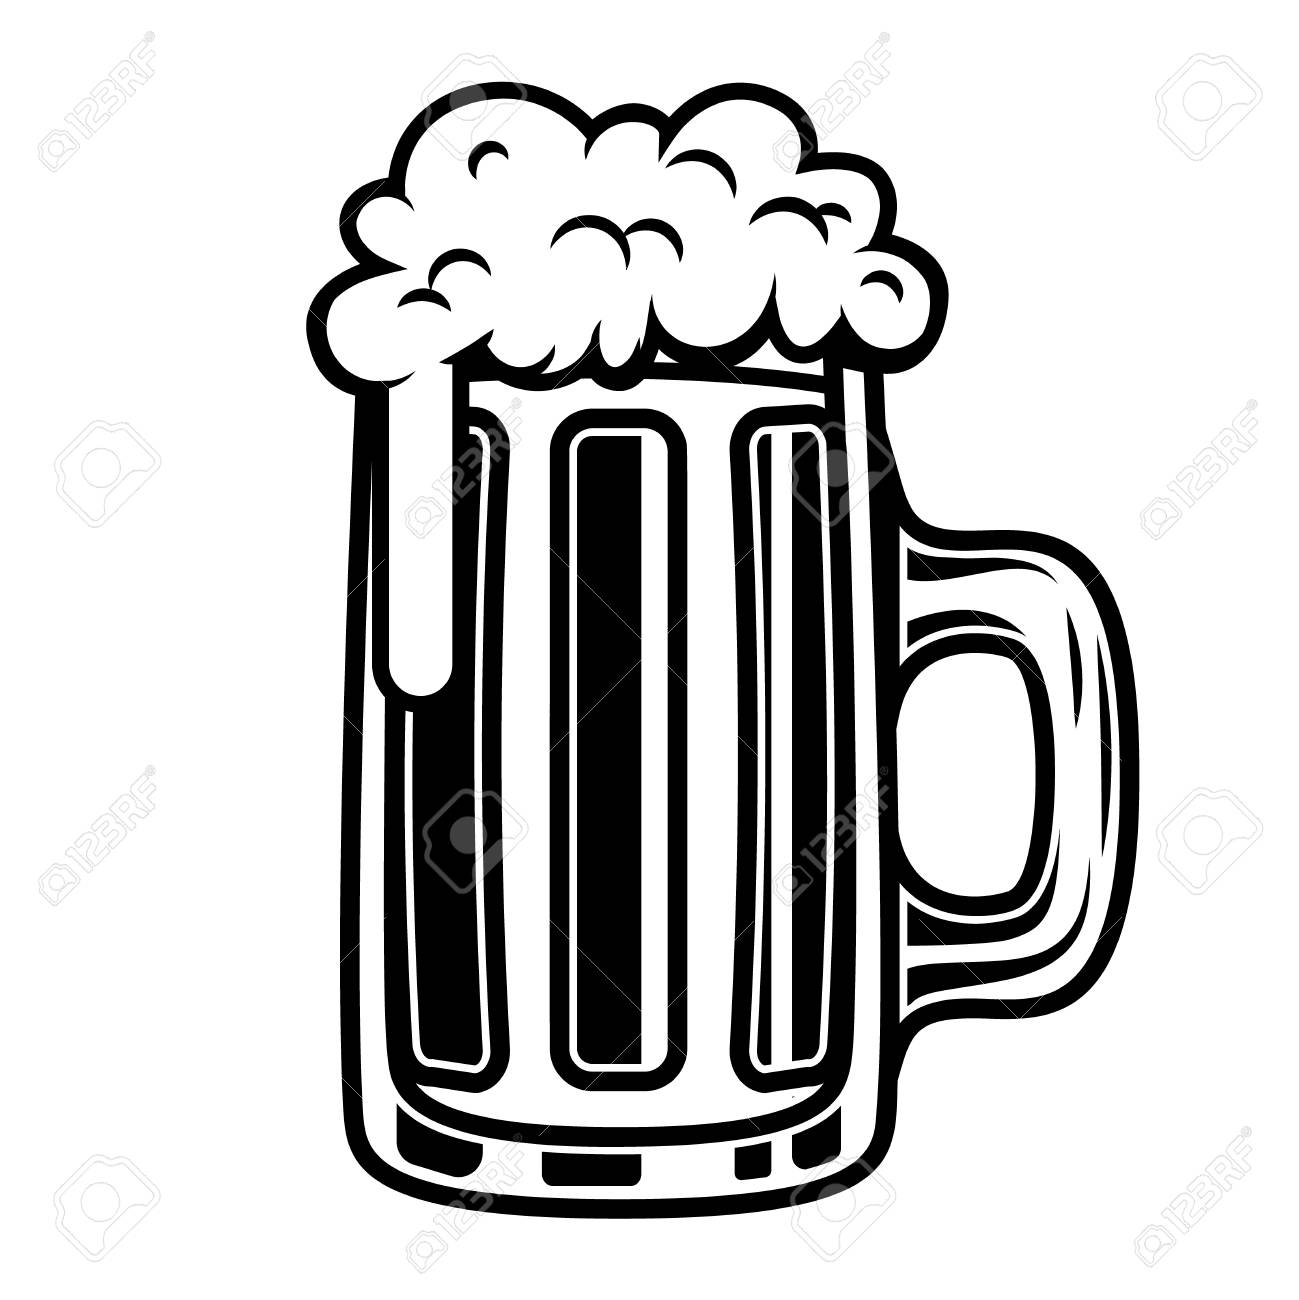 Beer Mug Illustration Isolated On White Background Design Element Royalty Free Cliparts Vectors And Stock Illustration Image 98541753